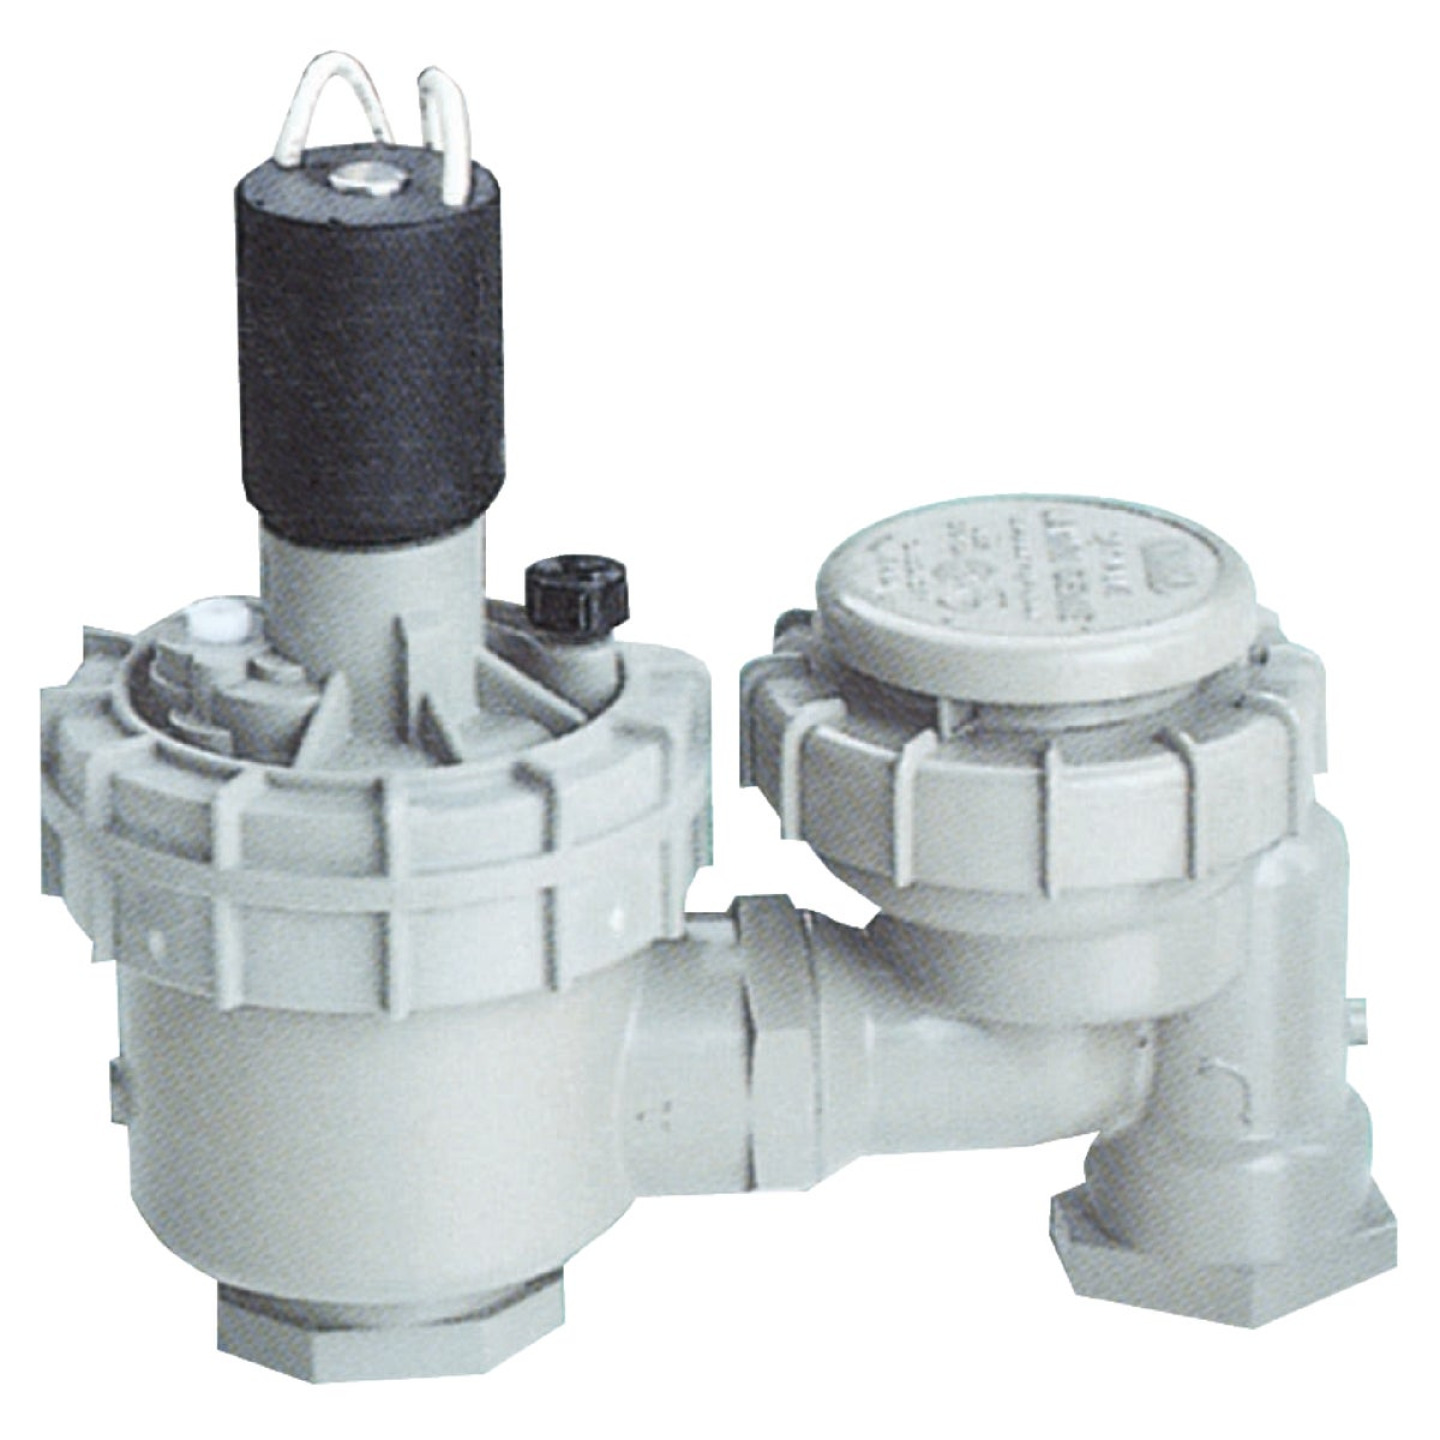 Lawn Genie 3/4 In. 150 psi Jar Top Automatic Anti-Siphon Valve Image 1